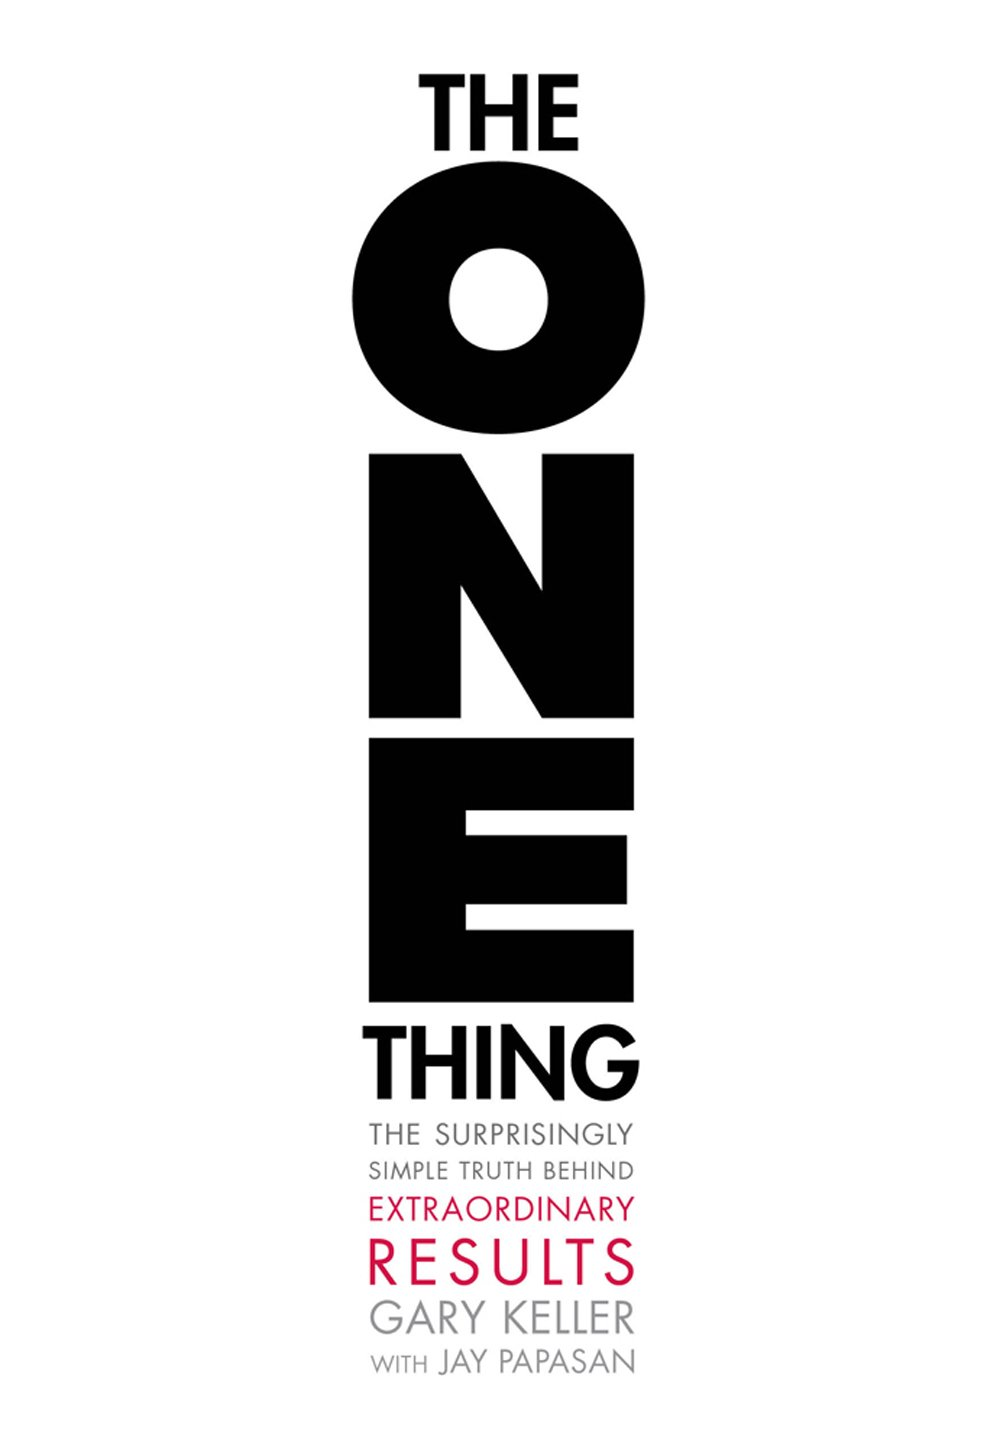 The One Thing: The Surprisingly Simple Truth Behind Extraordinary Results. Gary Keller & Jay Papasan notes By Kingston S Lim